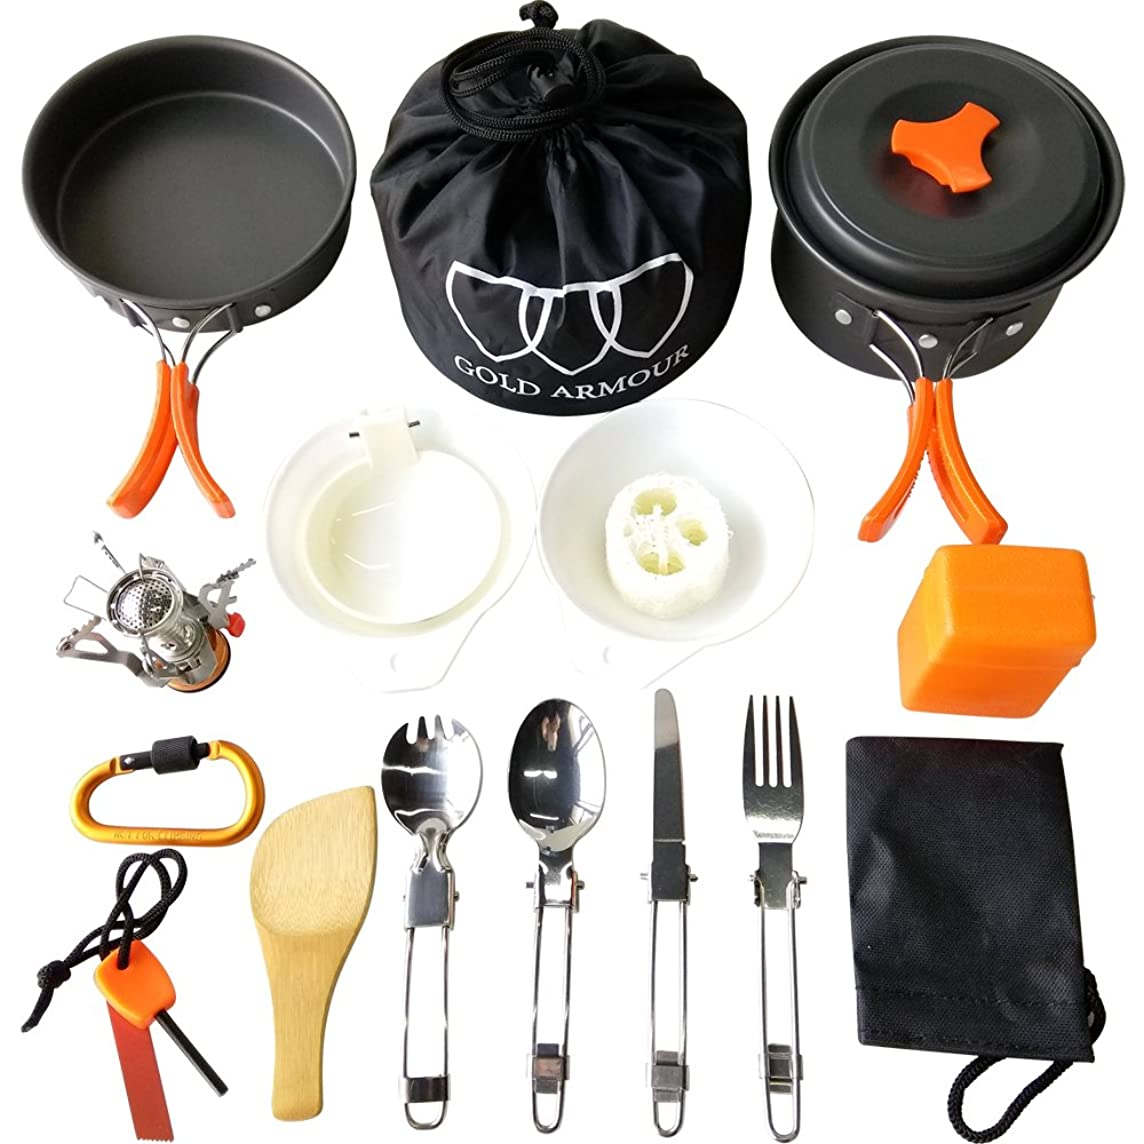 Gold Armour 17Pcs Camping Cookware Mess Kit Backpacking Gear & Hiking Outdoors Bug Out Bag Cooking Equipment Cookset | Lightweight, Compact, Durable Pot Pan Bowls